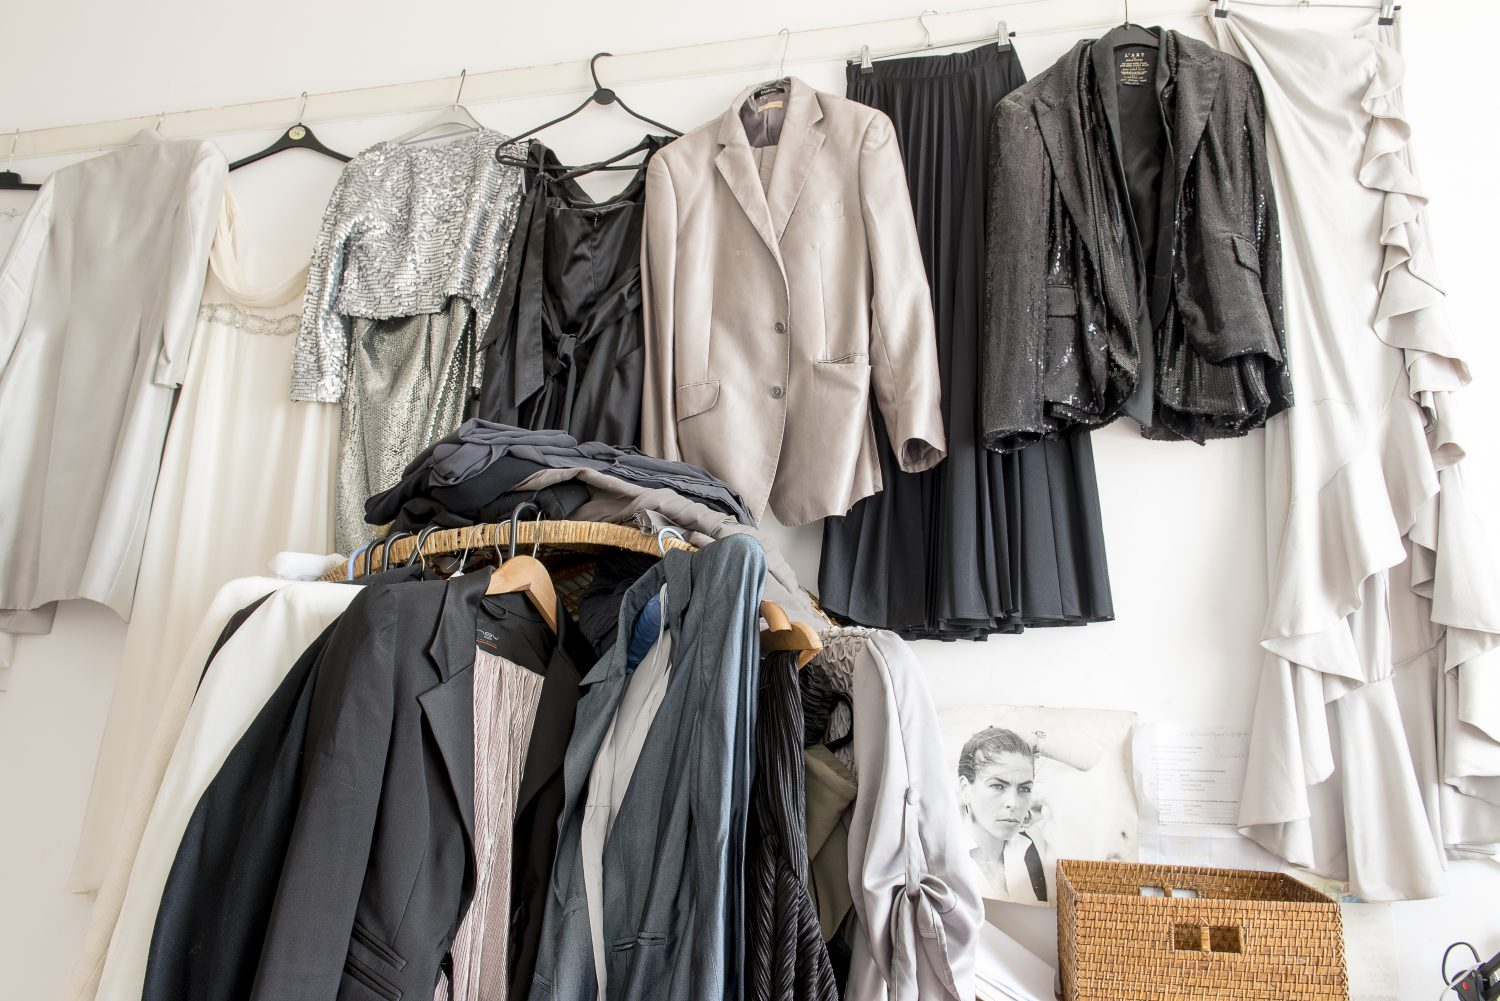 In Sassy's own smaller bedroom collections of vintage dresses, shoes and belts line the walls